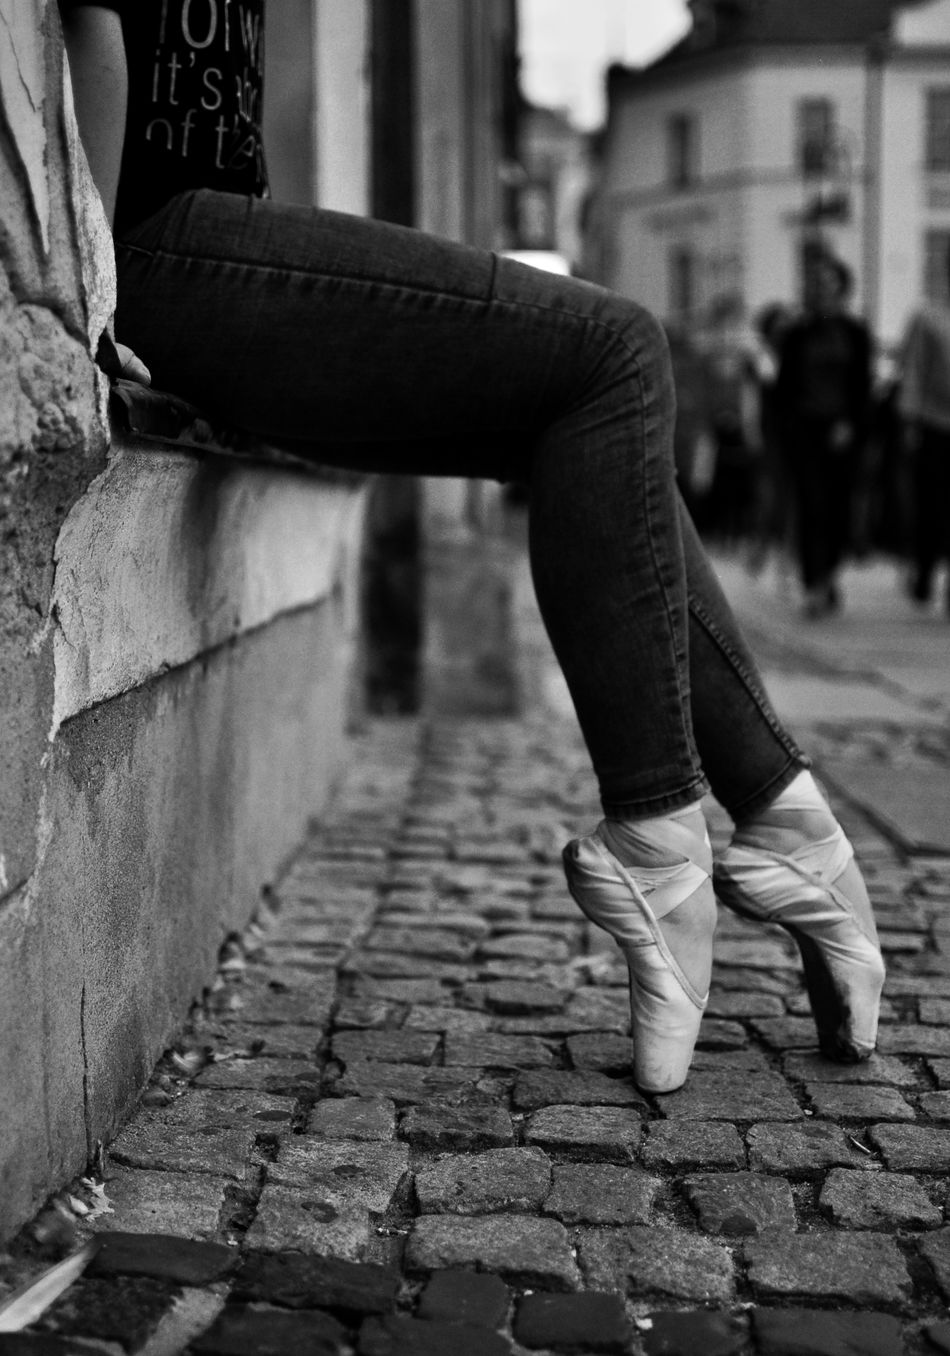 Ballet Blackandwhite City Dance Dancer Girl Legs Monochrome Photography Old Town Person Pointe Shoes Shoe